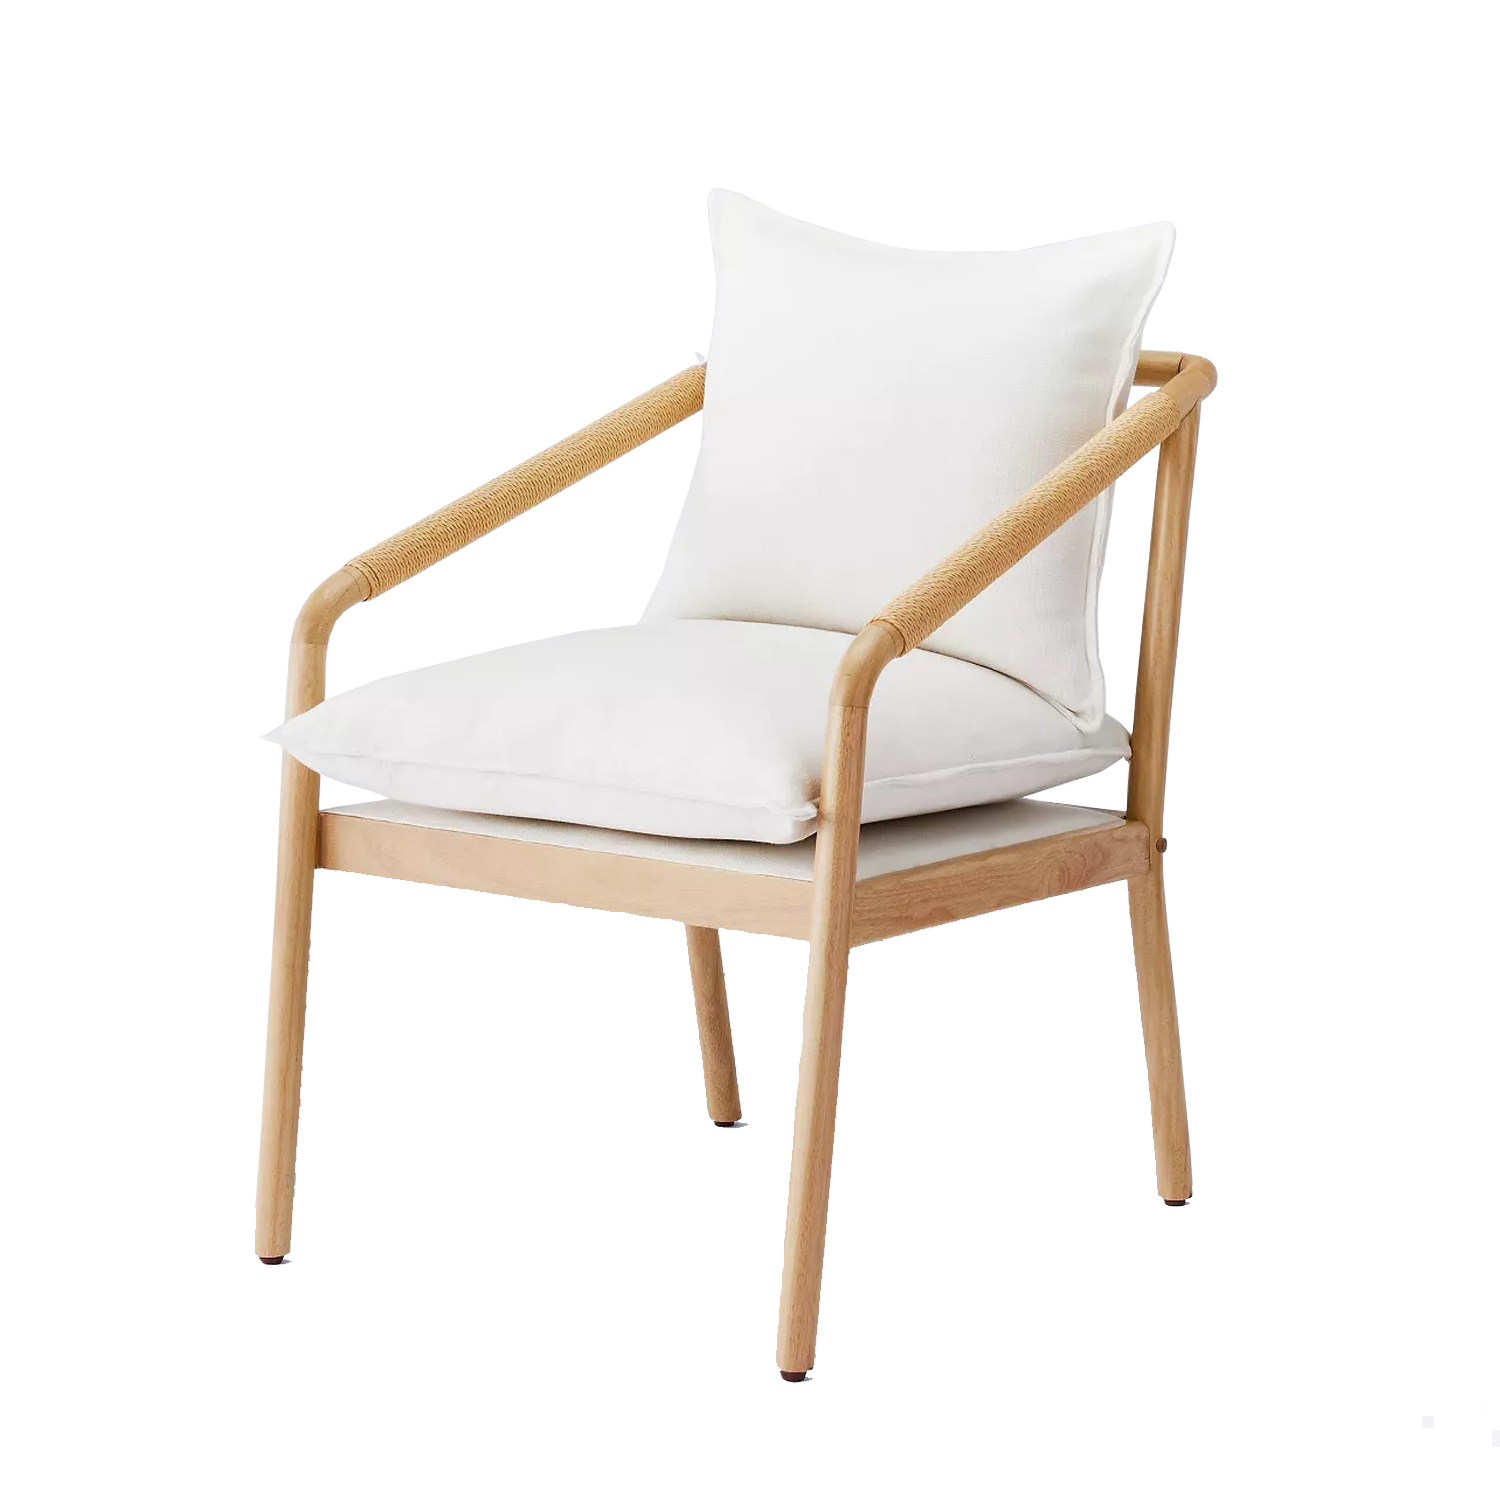 wooden and rattan chair with white cushions